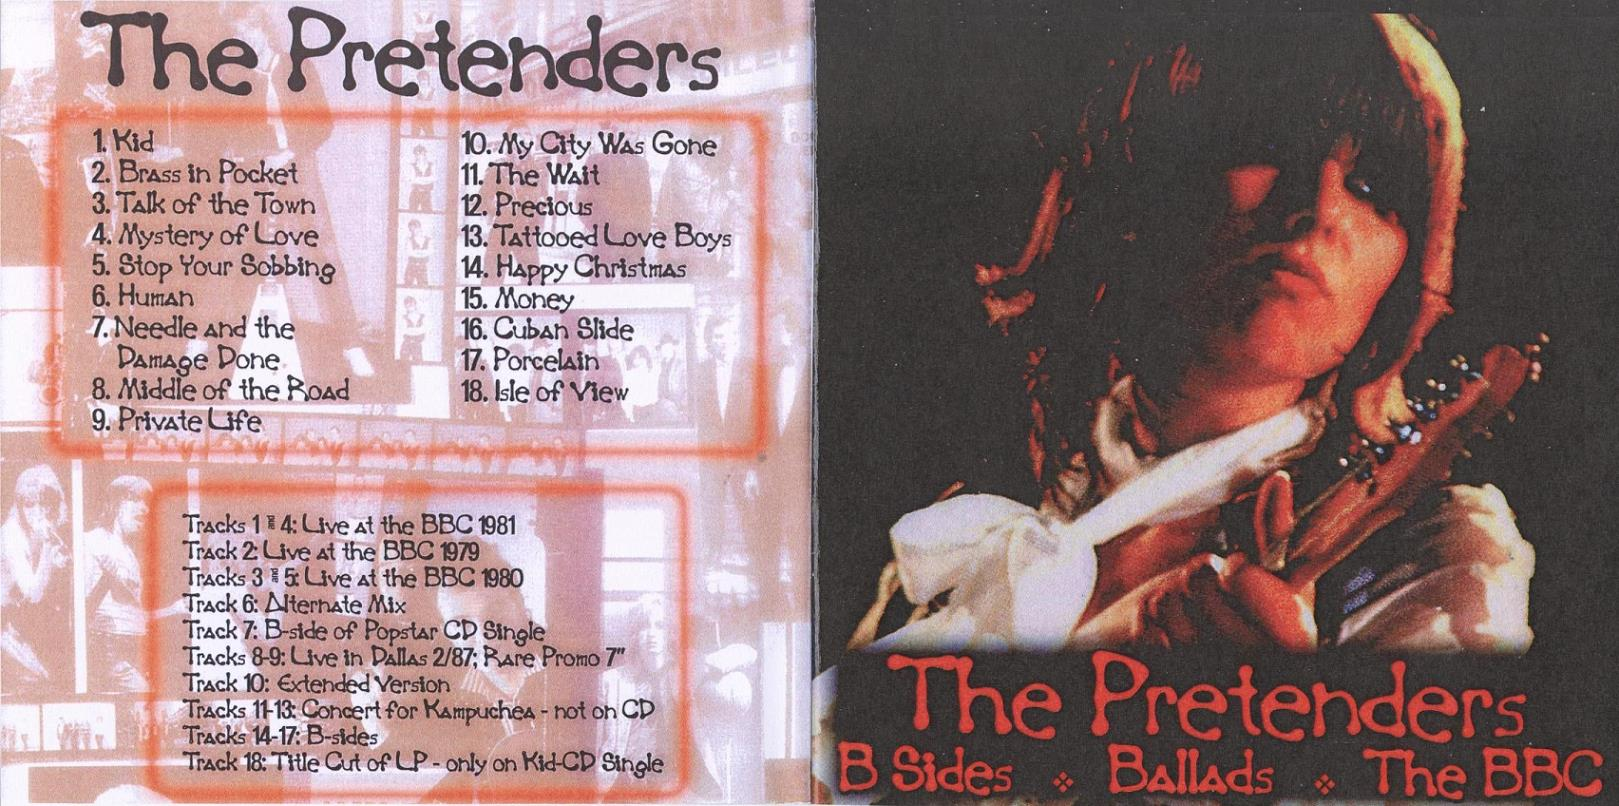 B'_sides_Ballads_&_the_BBC-front